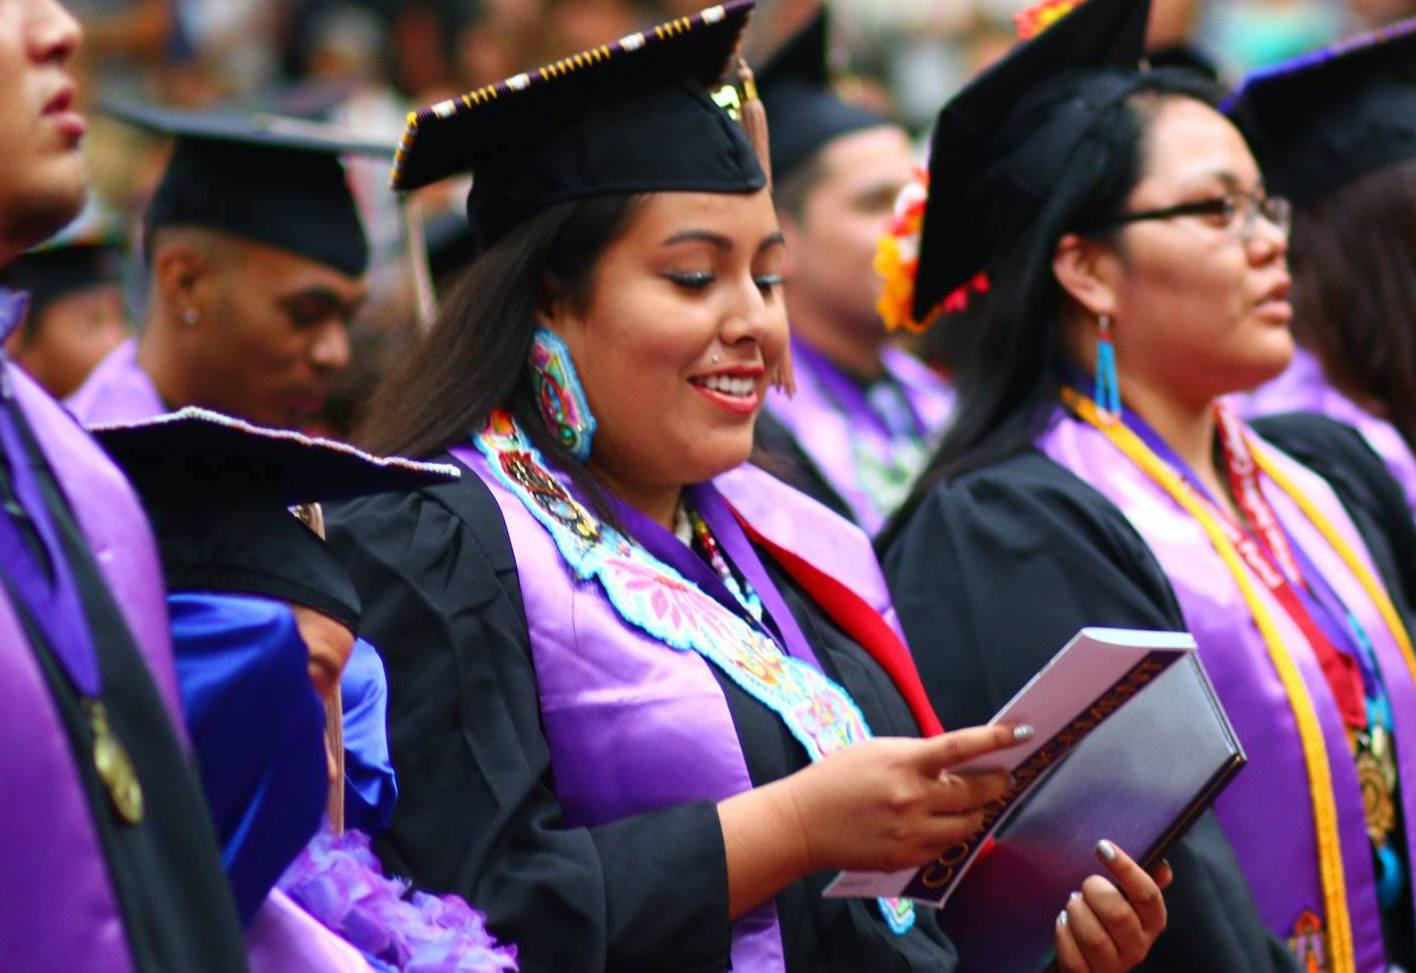 Indigenous American in Higher Education Graduation Ceremony